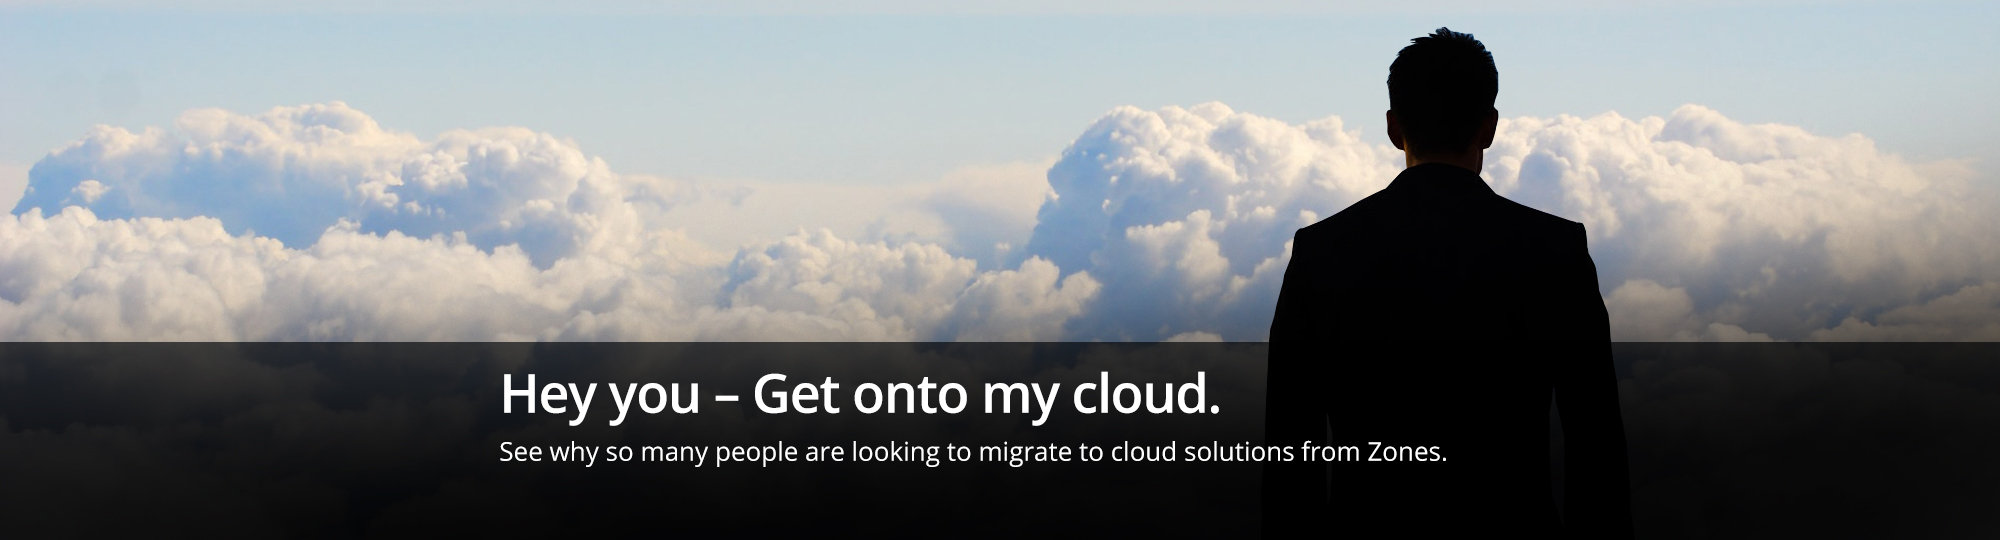 Hey you - Get onto my cloud. See why so many people are looking to migrate to cloud solutions from Zones.